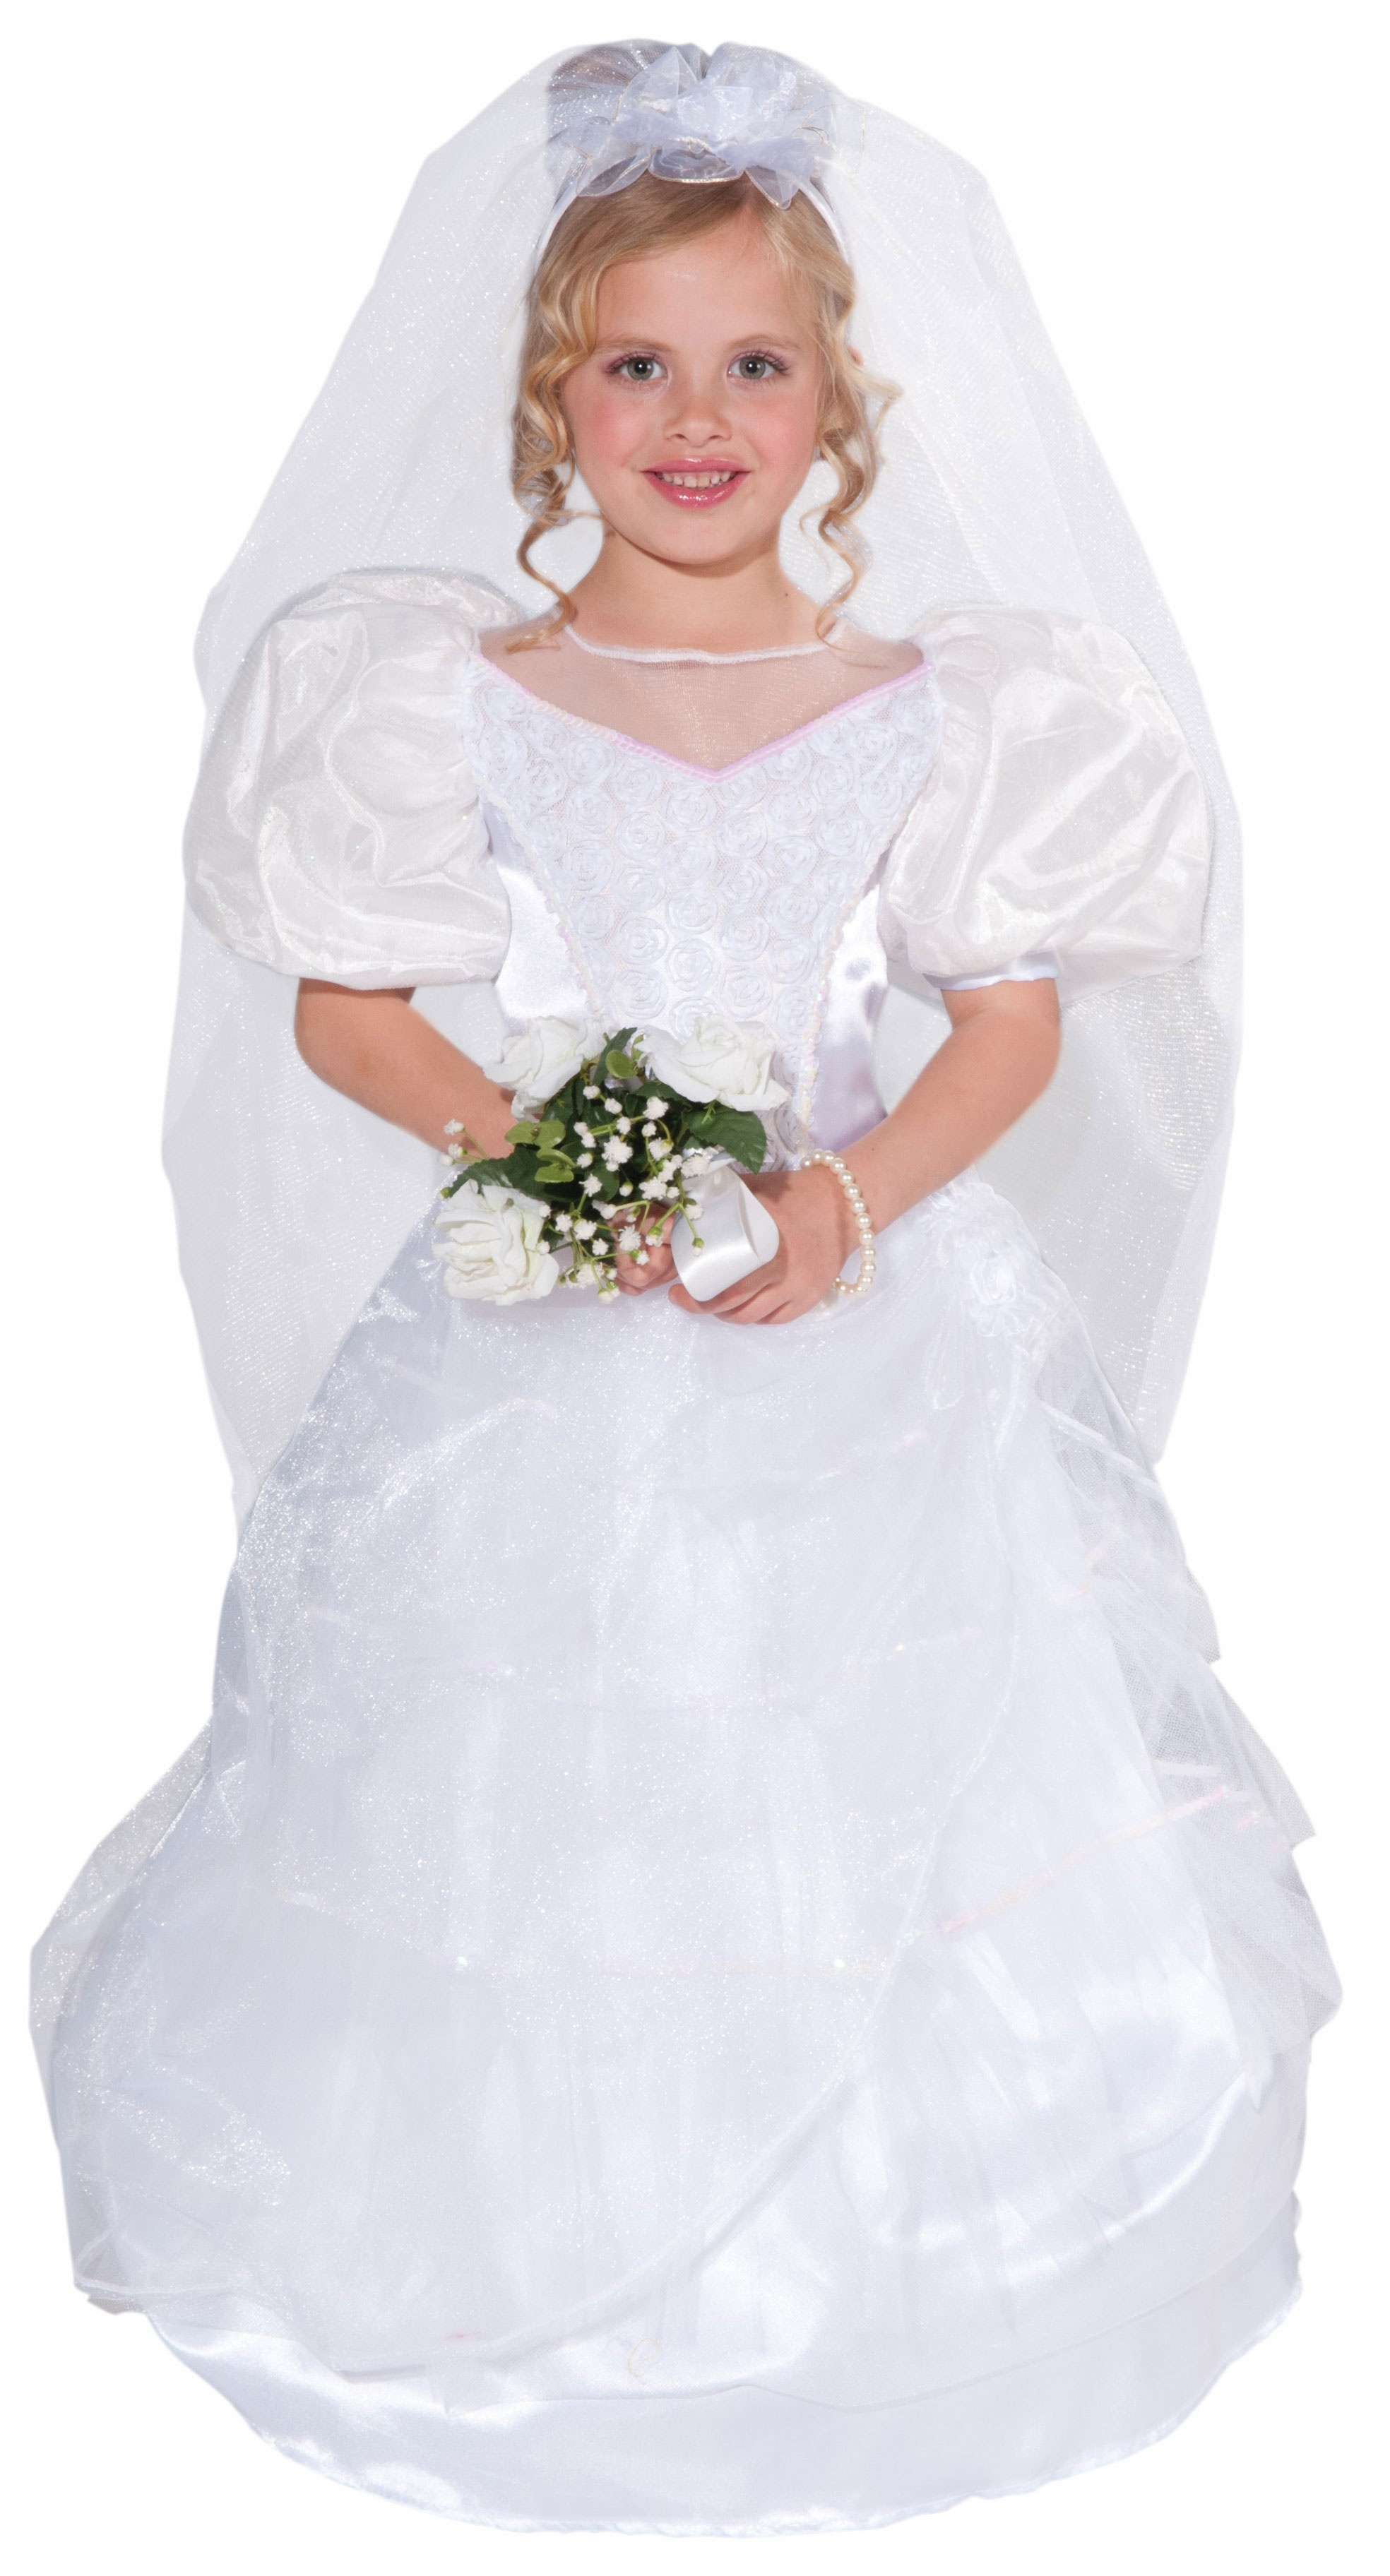 First Dance with Daddy Bride Kids Costume Mr Costumes